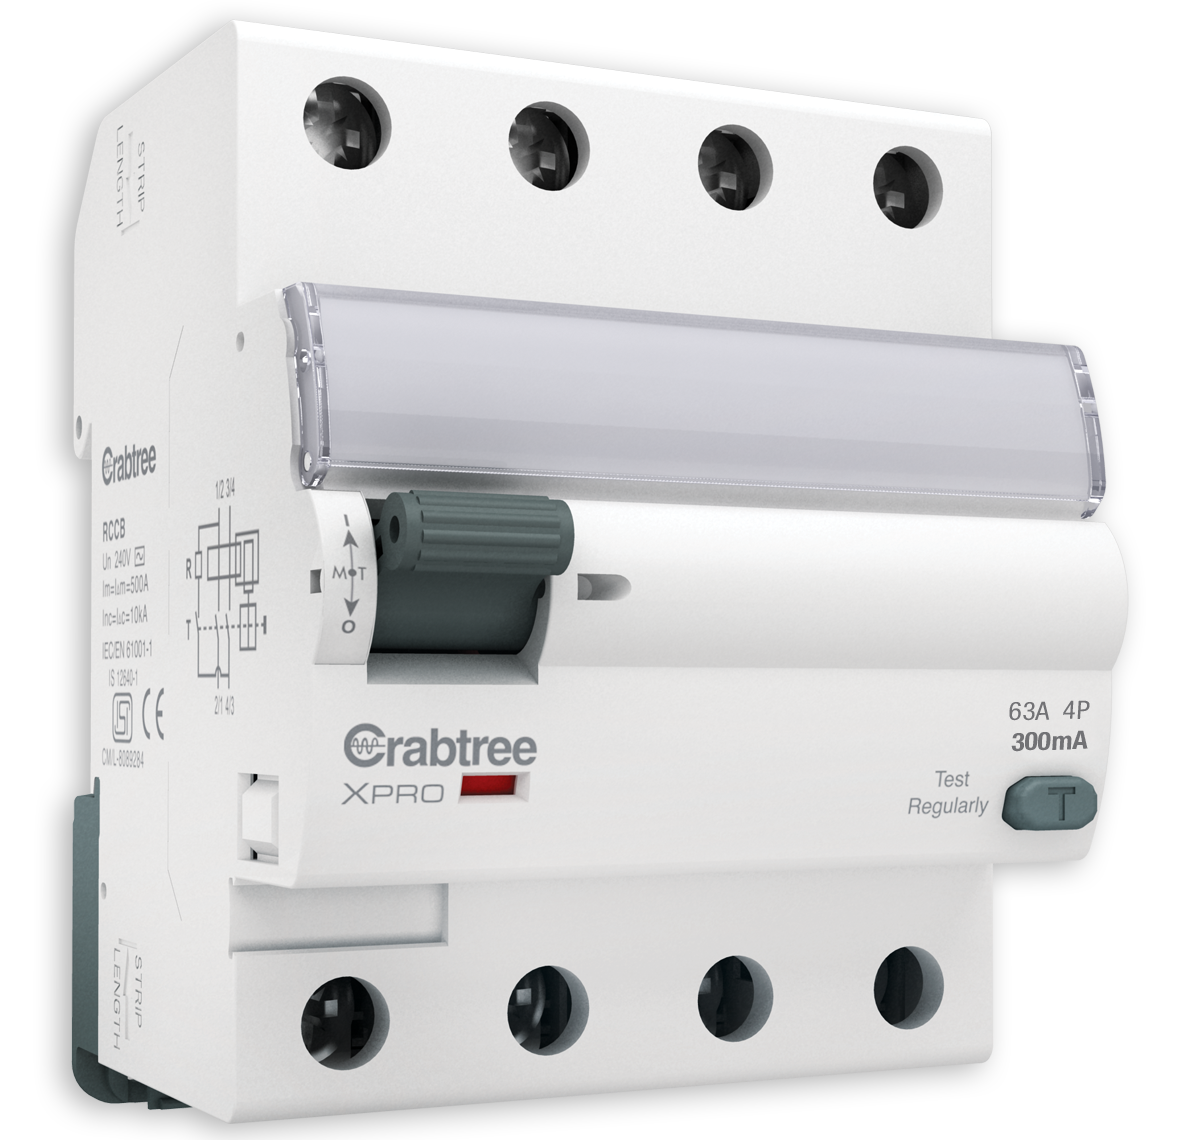 Crabtree - RCCB  A  Type FP 300mA-63A